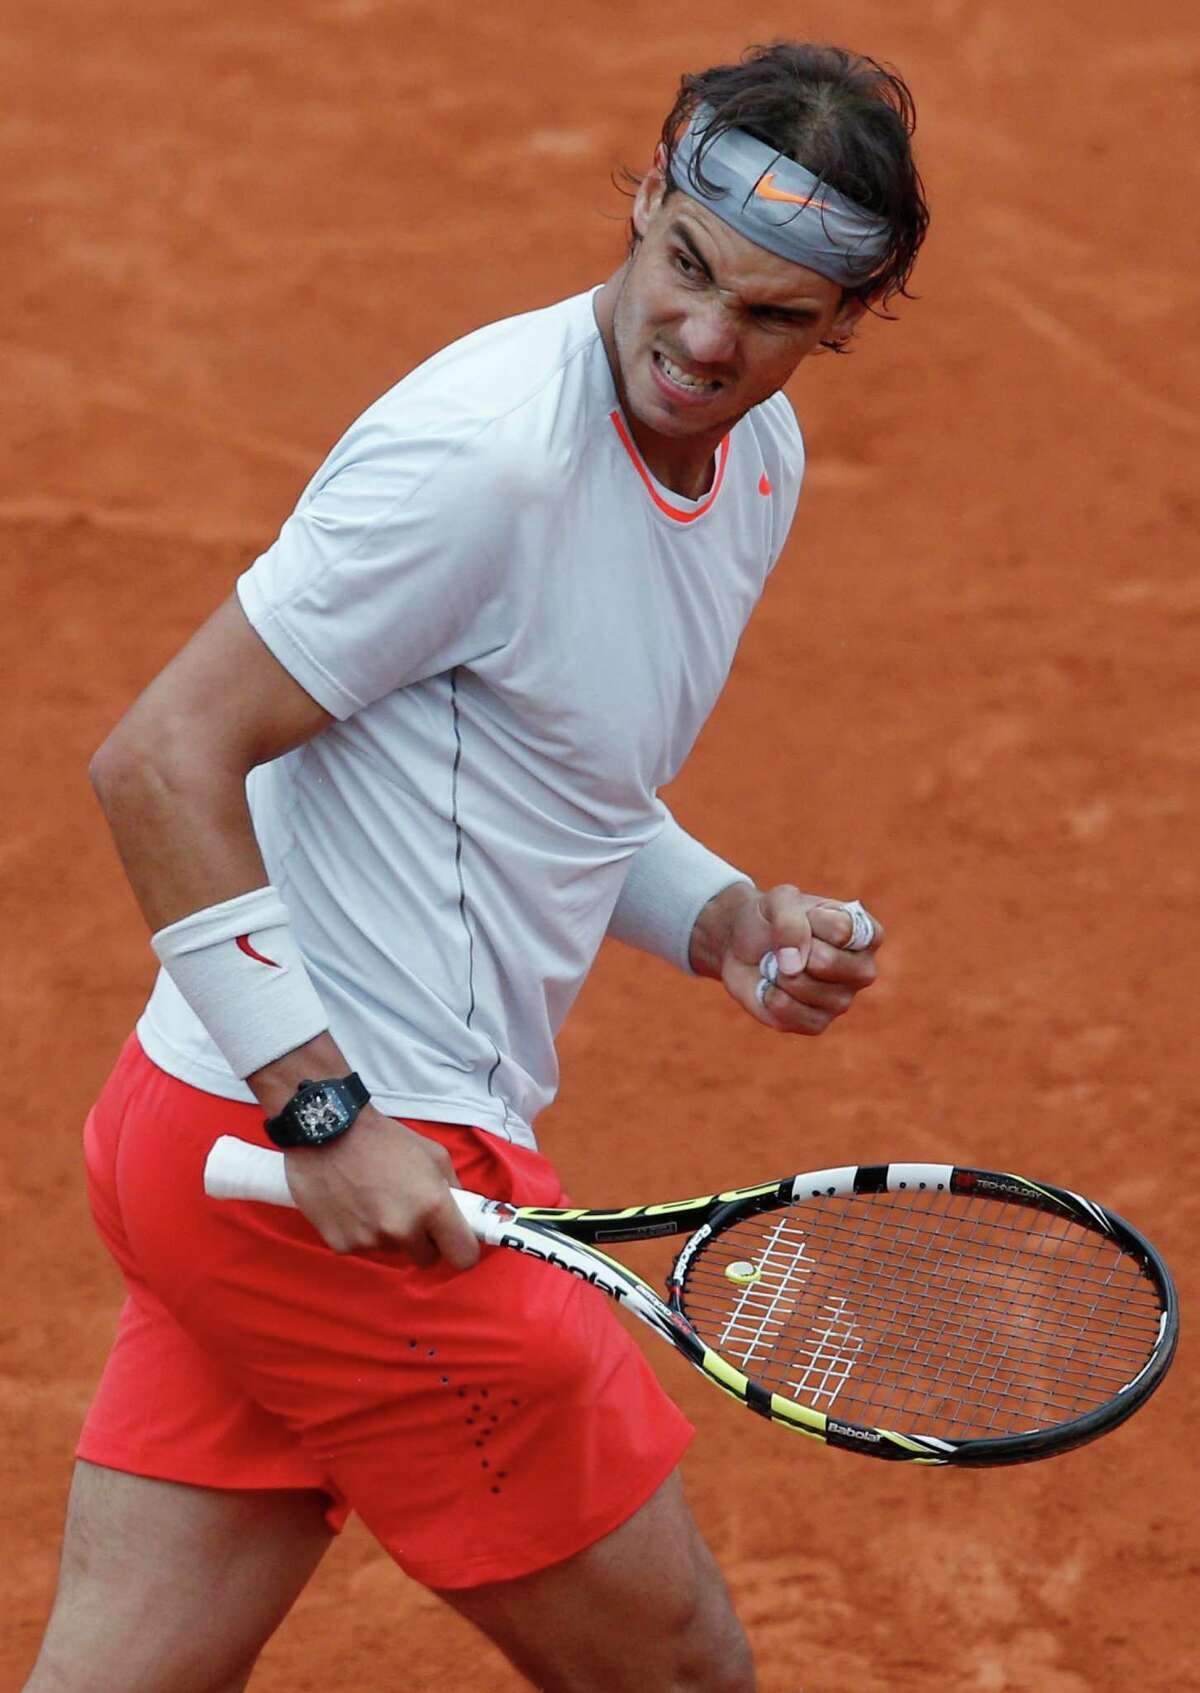 Spain's Rafael Nadal clenches his fist after scoring against compatriot David Ferrer in the final of the French Open tennis tournament, at Roland Garros stadium in Paris, Sunday June 9, 2013. Nadal won the tournament in three sets 6-3, 6-2, 6-3. (AP Photo/Christophe Ena)